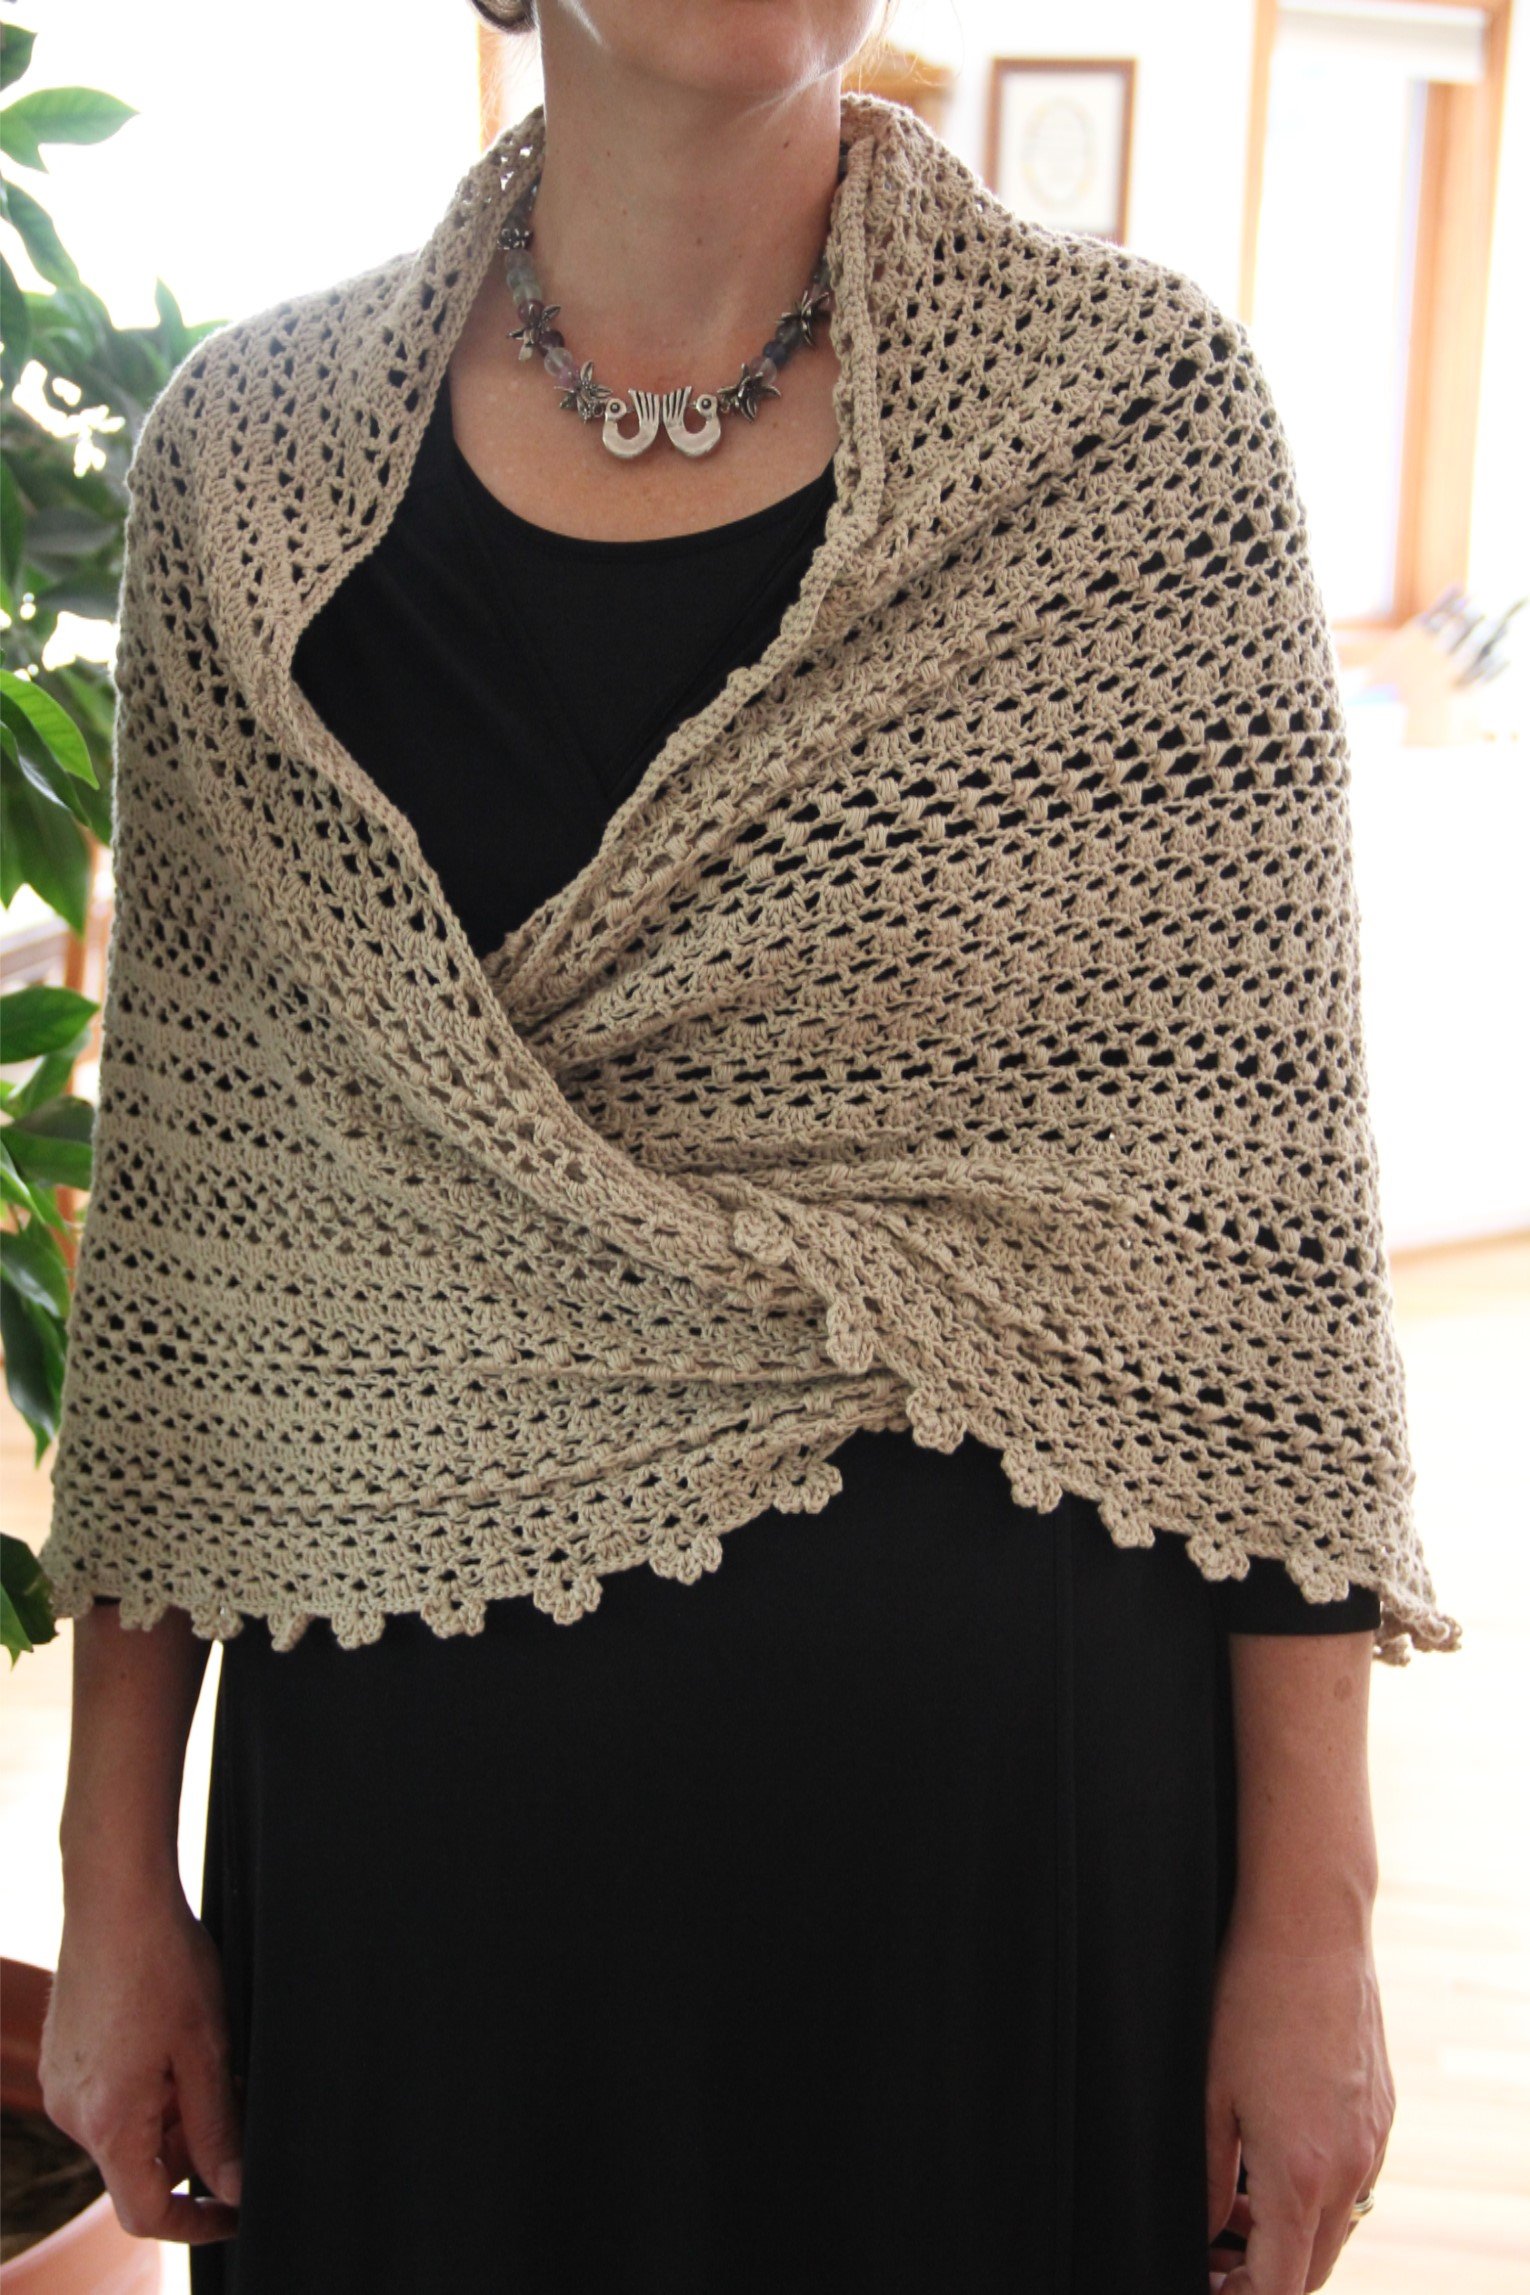 Free Pattern Crochet : Free Crochet Shawl Pattern Worked In A Basic Trellis Pattern Pictures ...